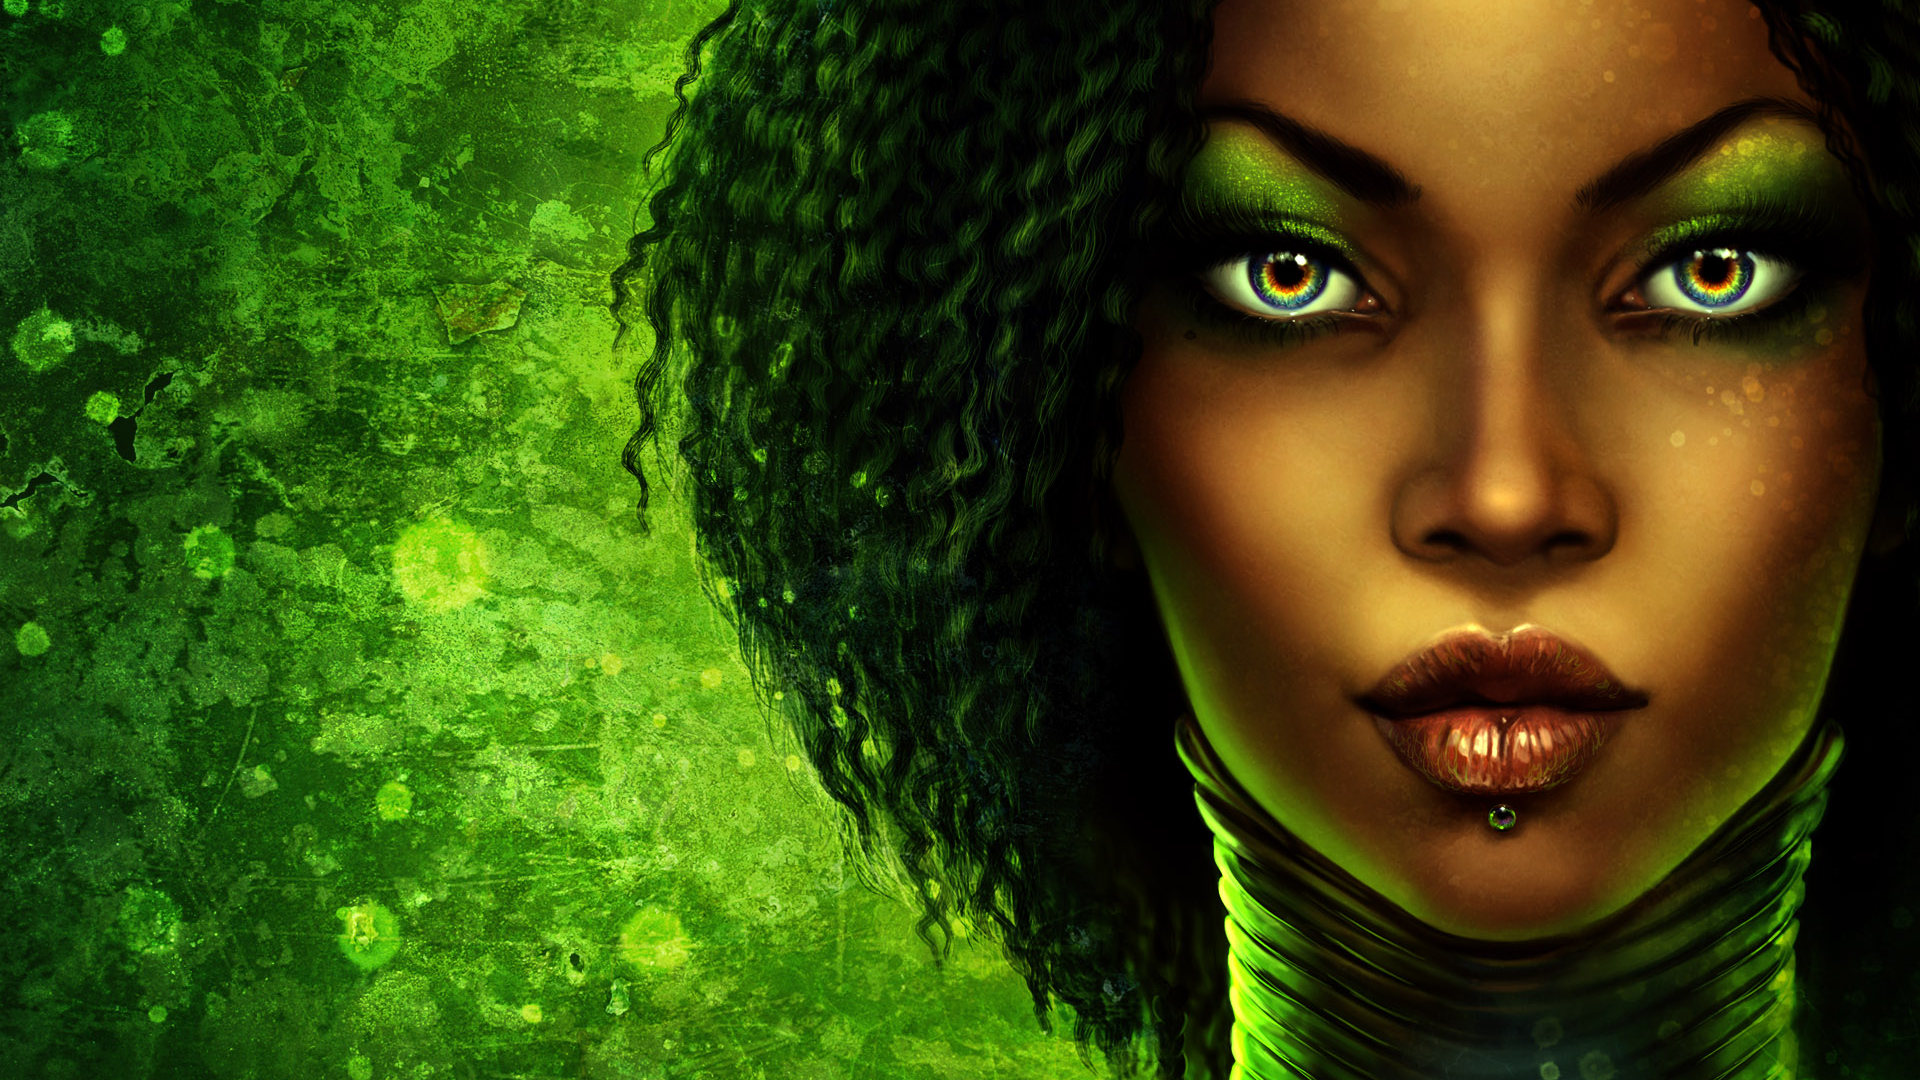 Download african women desktop wallpaper 1920x1200 50 african american art wallpaper - Beautiful girl screensaver ...